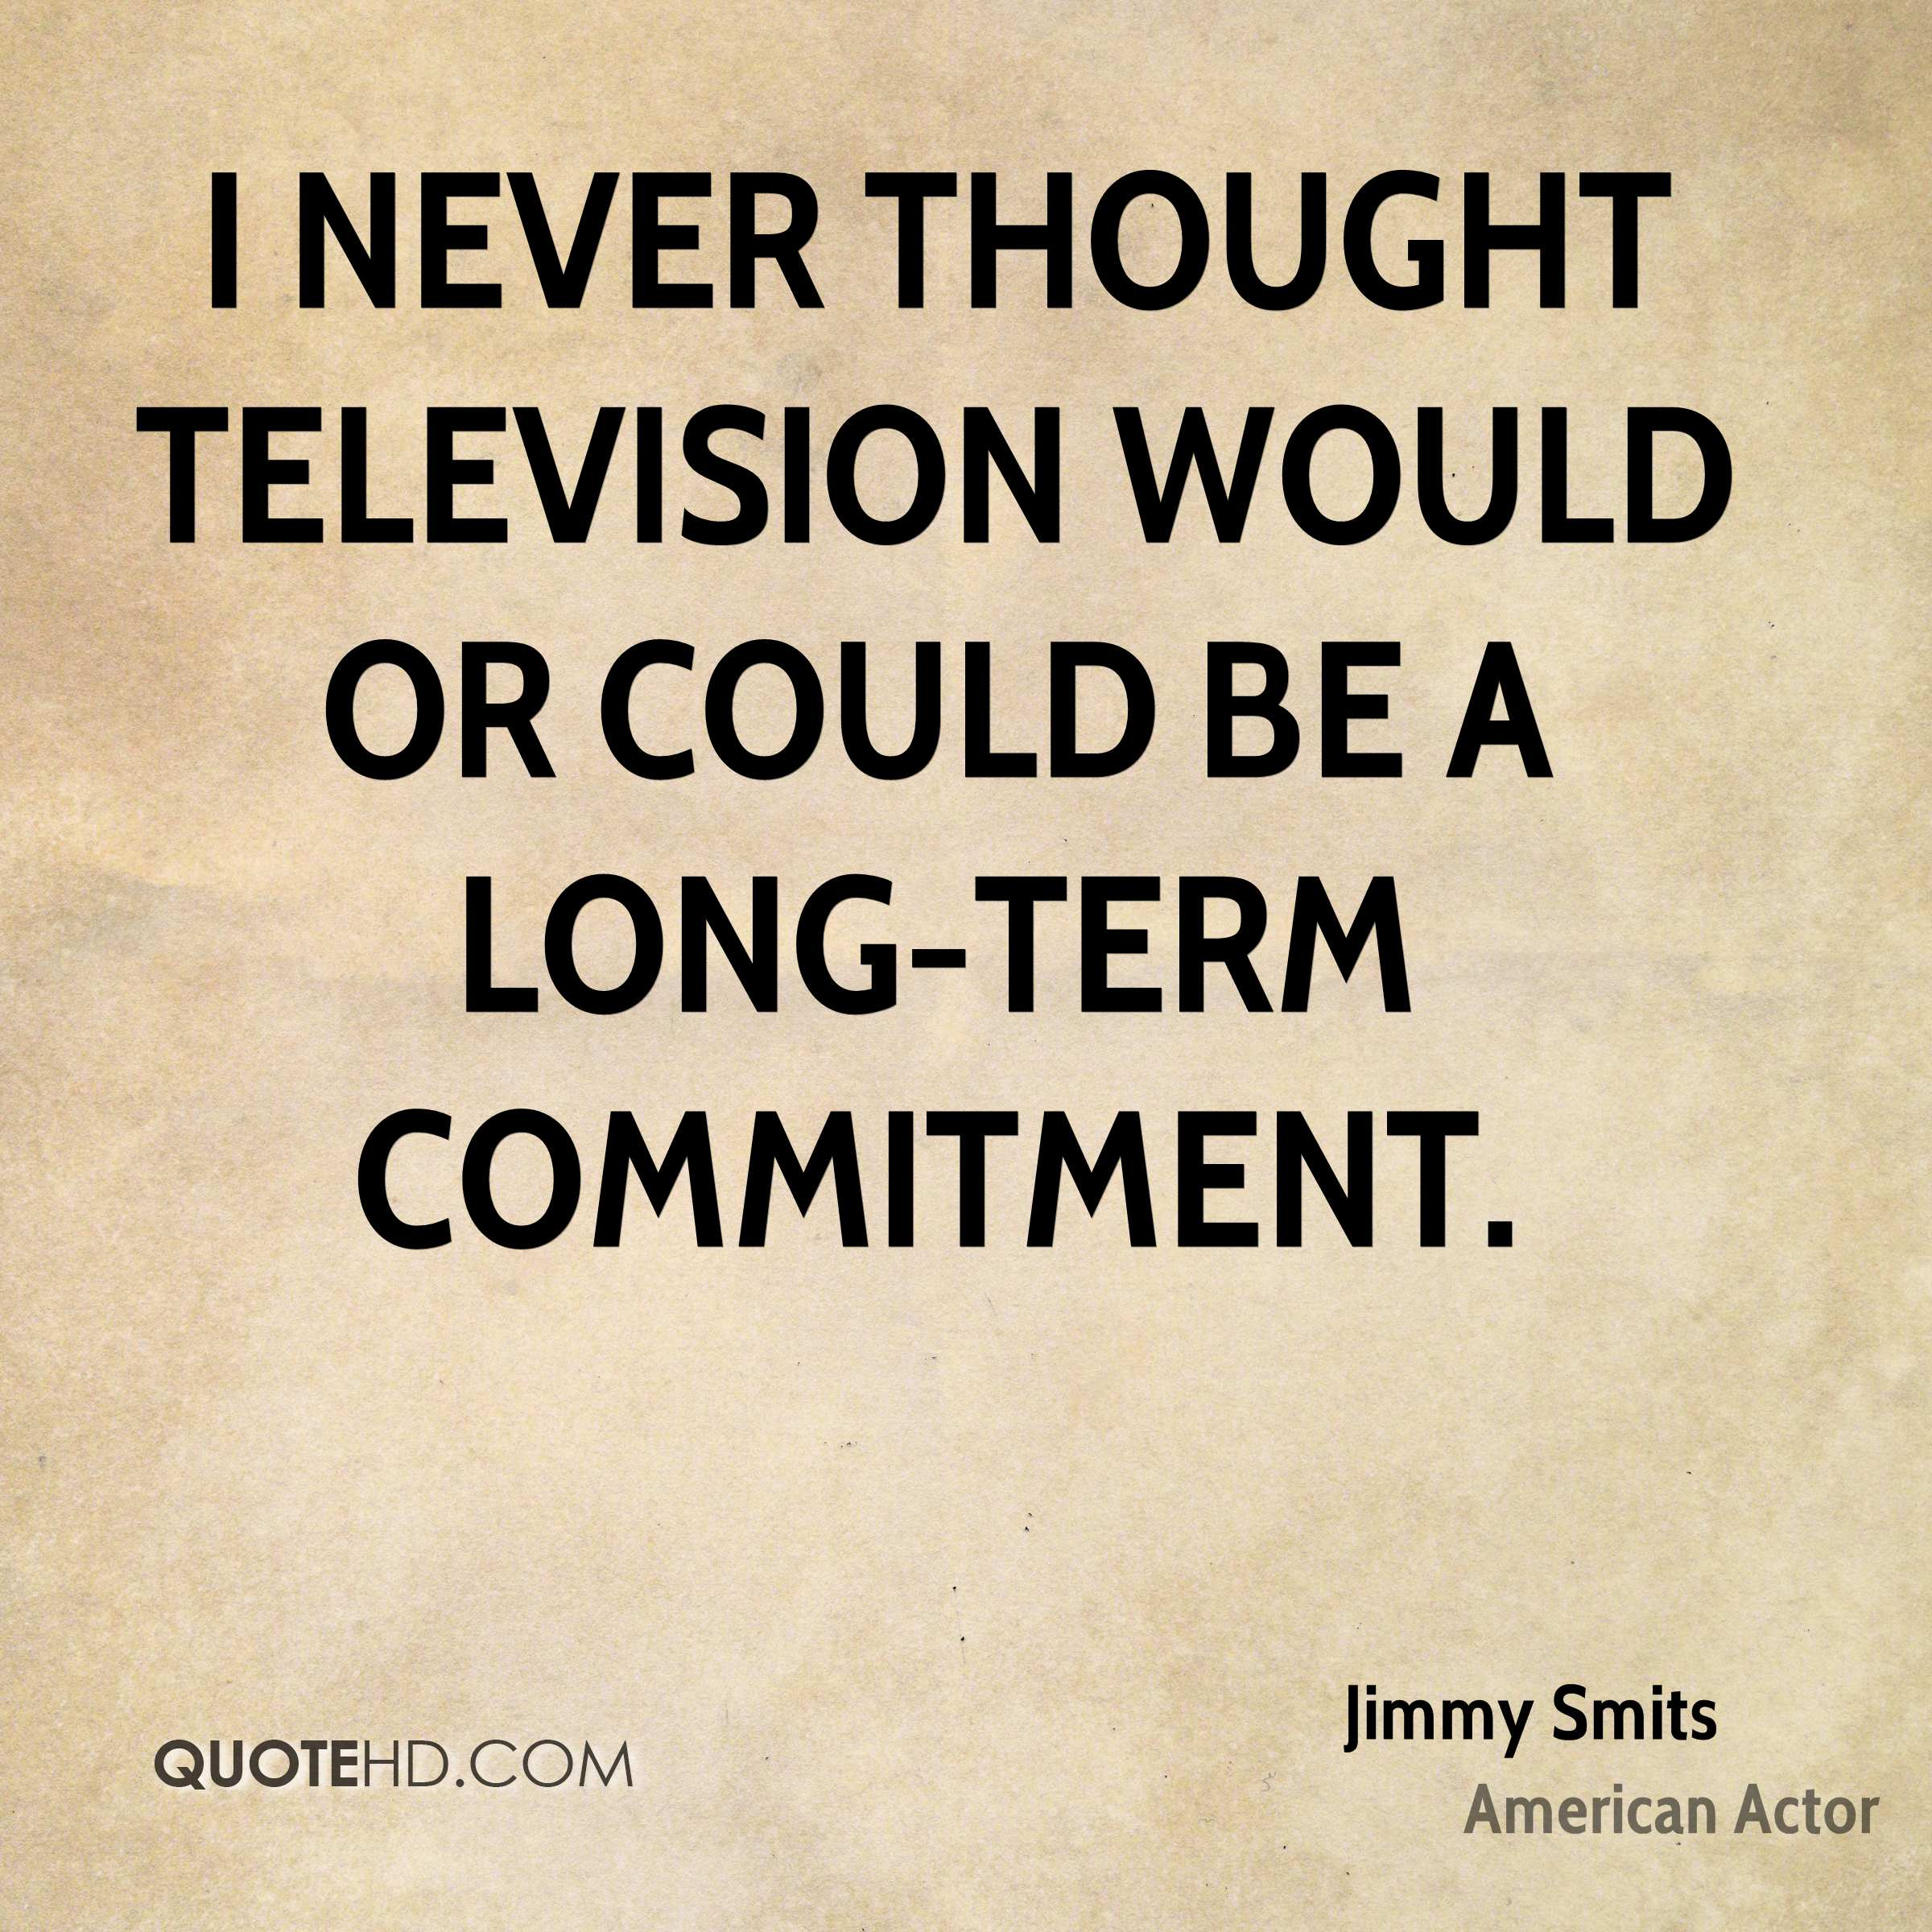 I never thought television would or could be a long-term commitment.